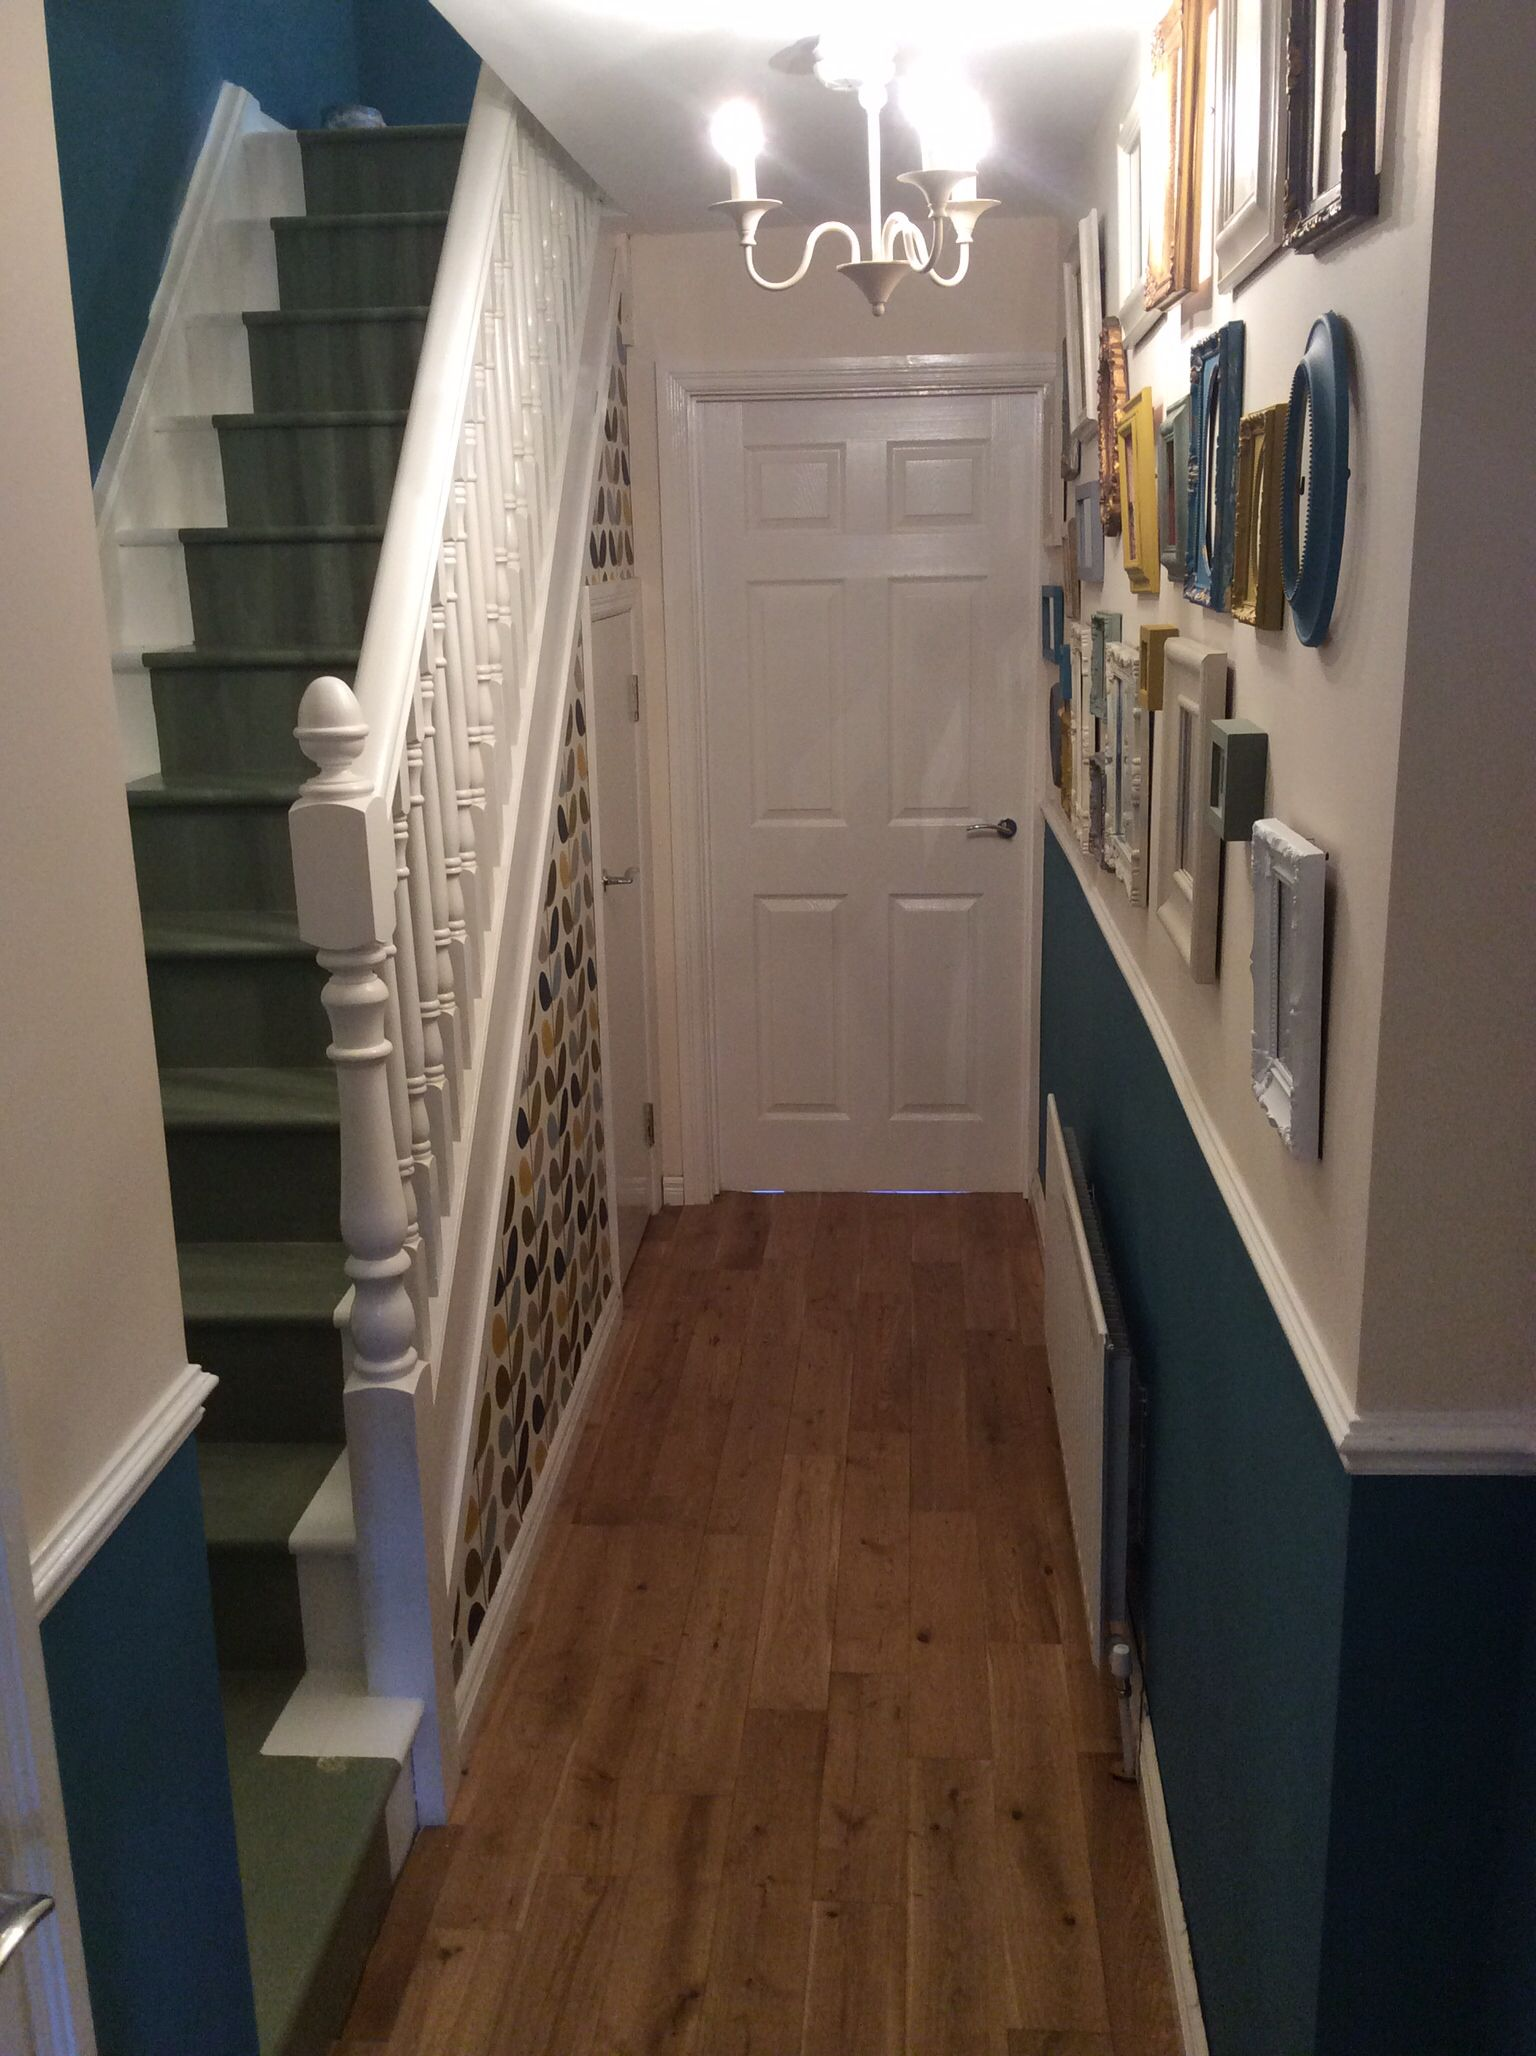 Orla kiely wallpaper painted staircase charity shop frames for Wallpaper for hall walls